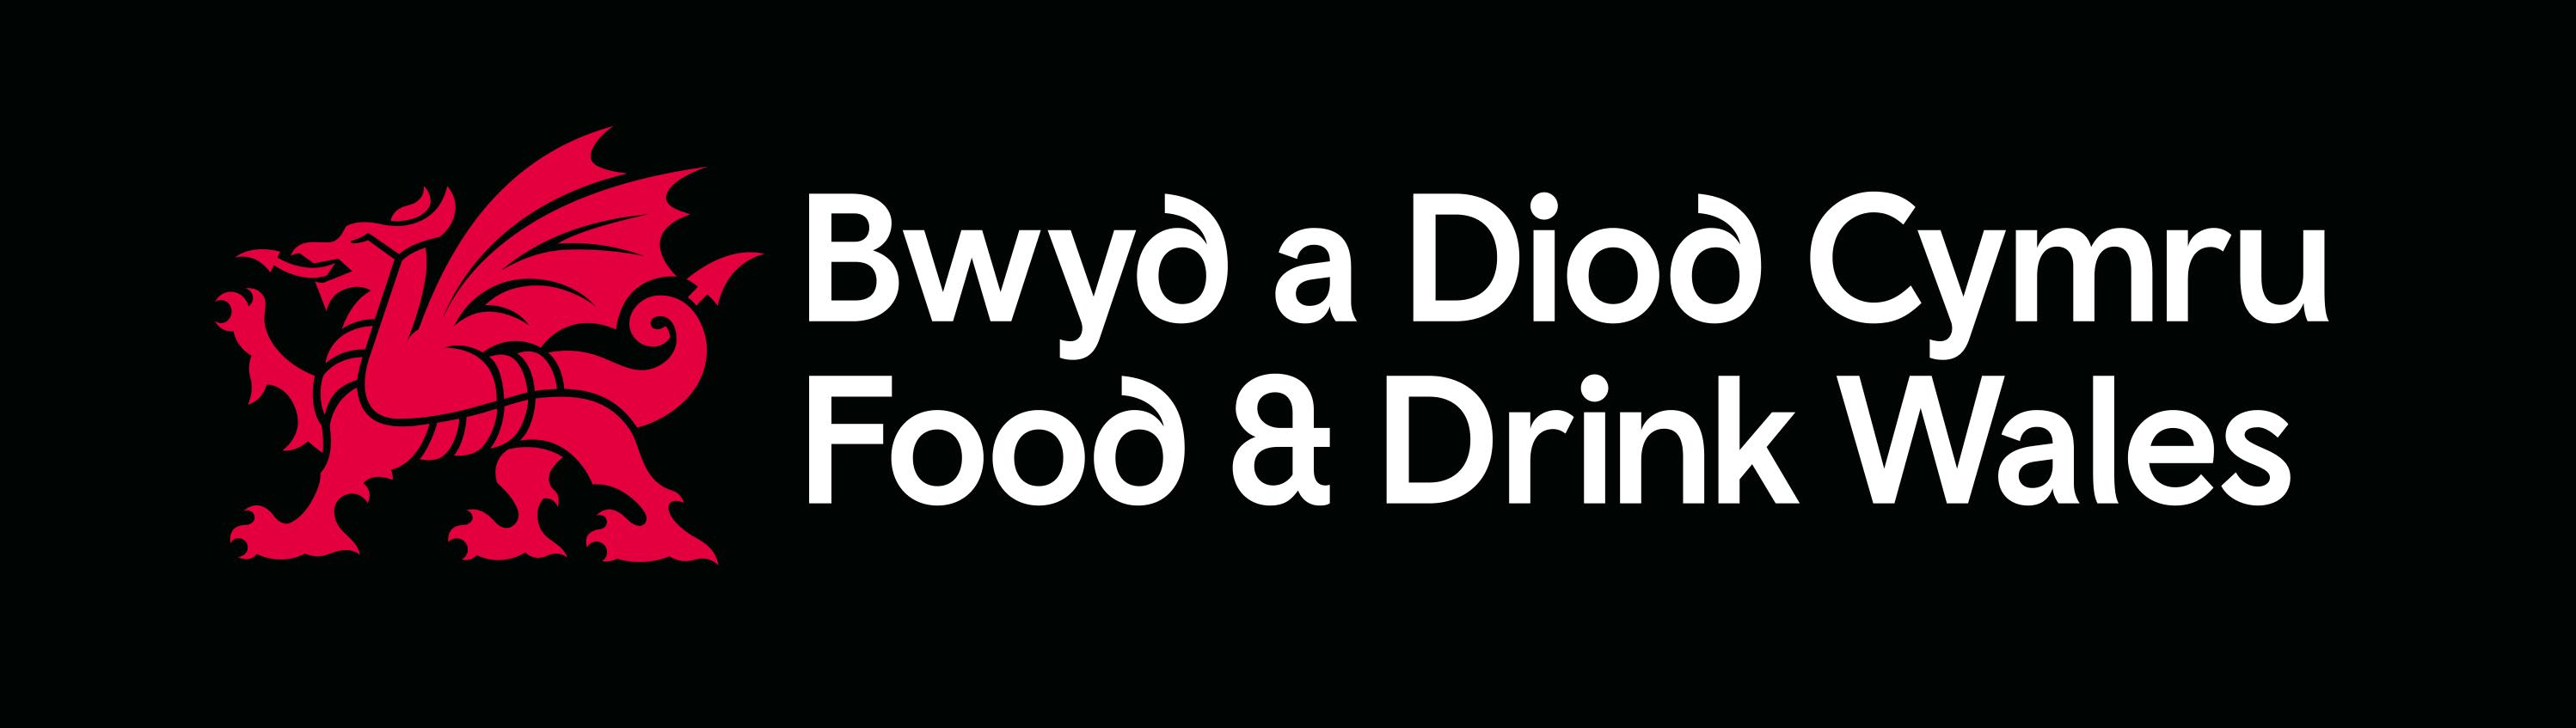 Food and Drink Wales logo